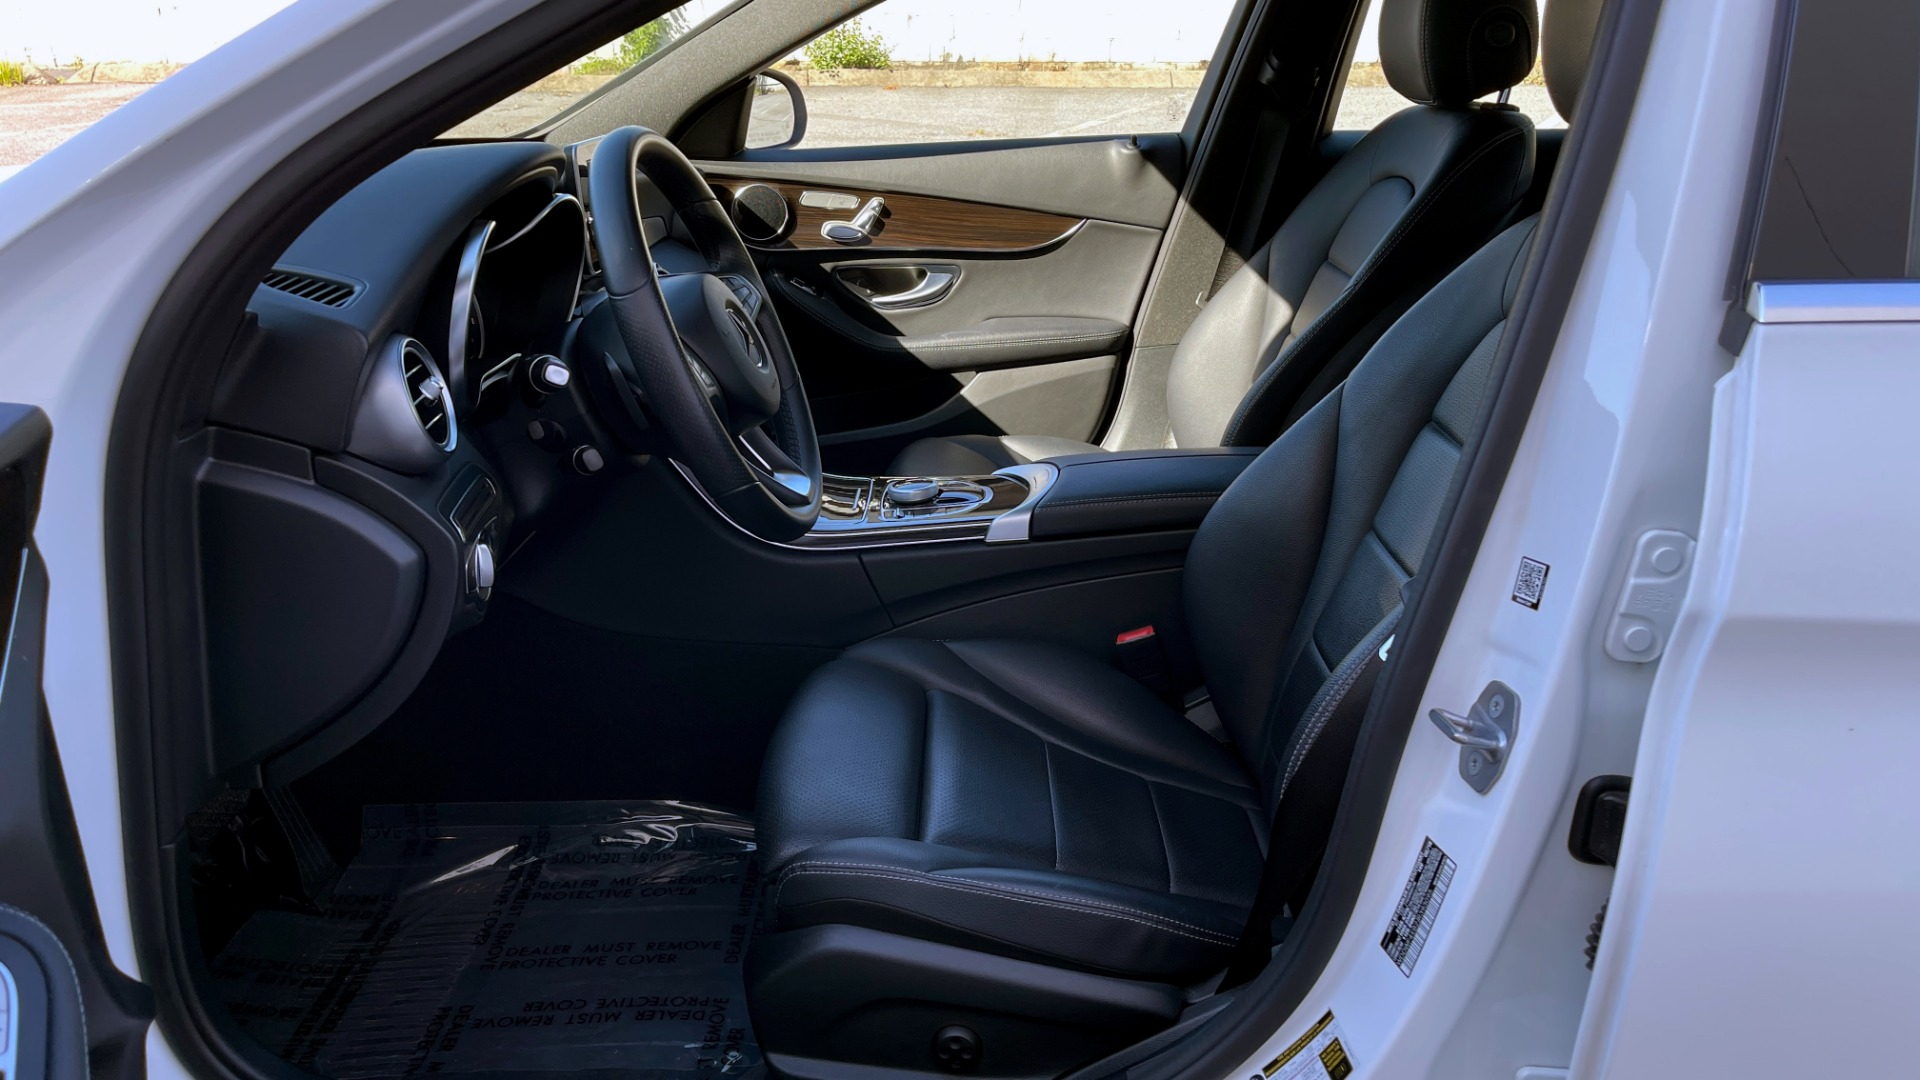 Used 2018 Mercedes-Benz C-CLASS C 300 4MATIC PREMIUM / SMARTPHONE INTEG / PANO-ROOF / REARVIEW for sale $30,995 at Formula Imports in Charlotte NC 28227 27